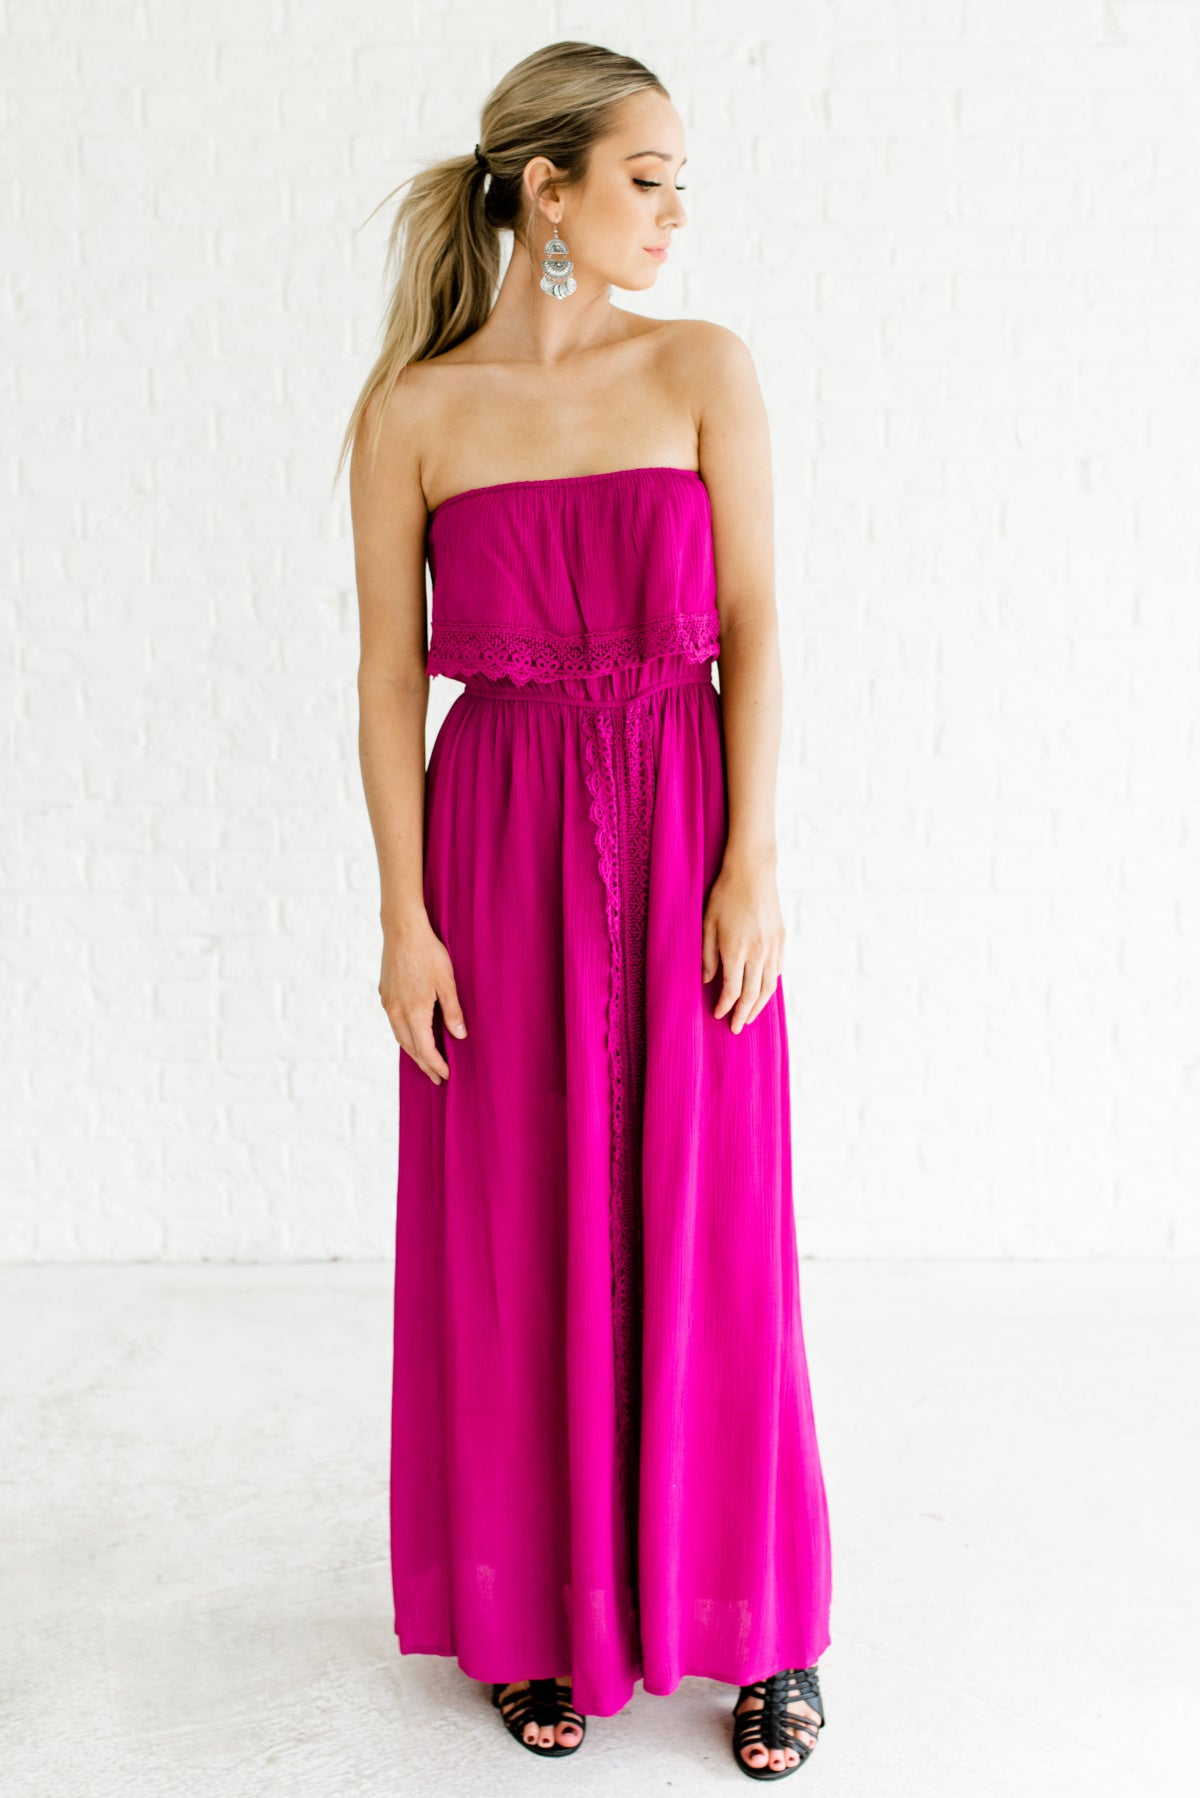 Magenta Pink Strapless Style Boutique Maxi Dresses for Women